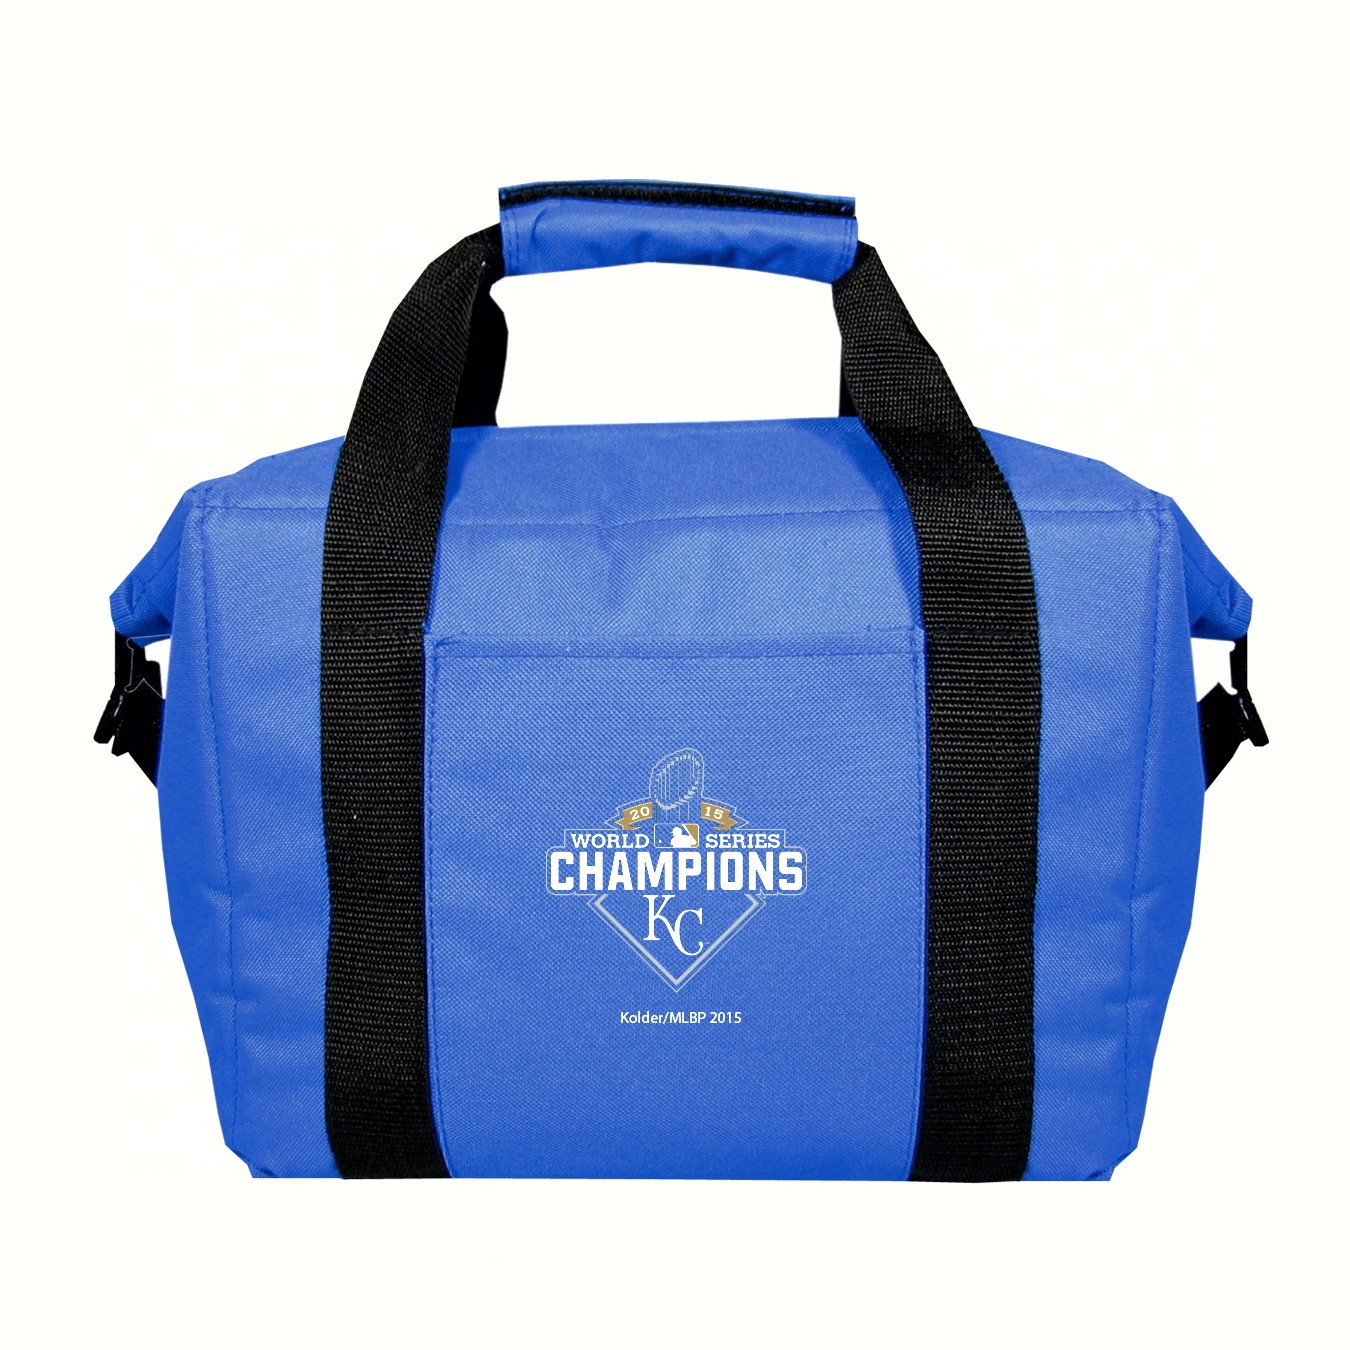 Kooler Bag 2015 World Series Champs Kansas City Royals